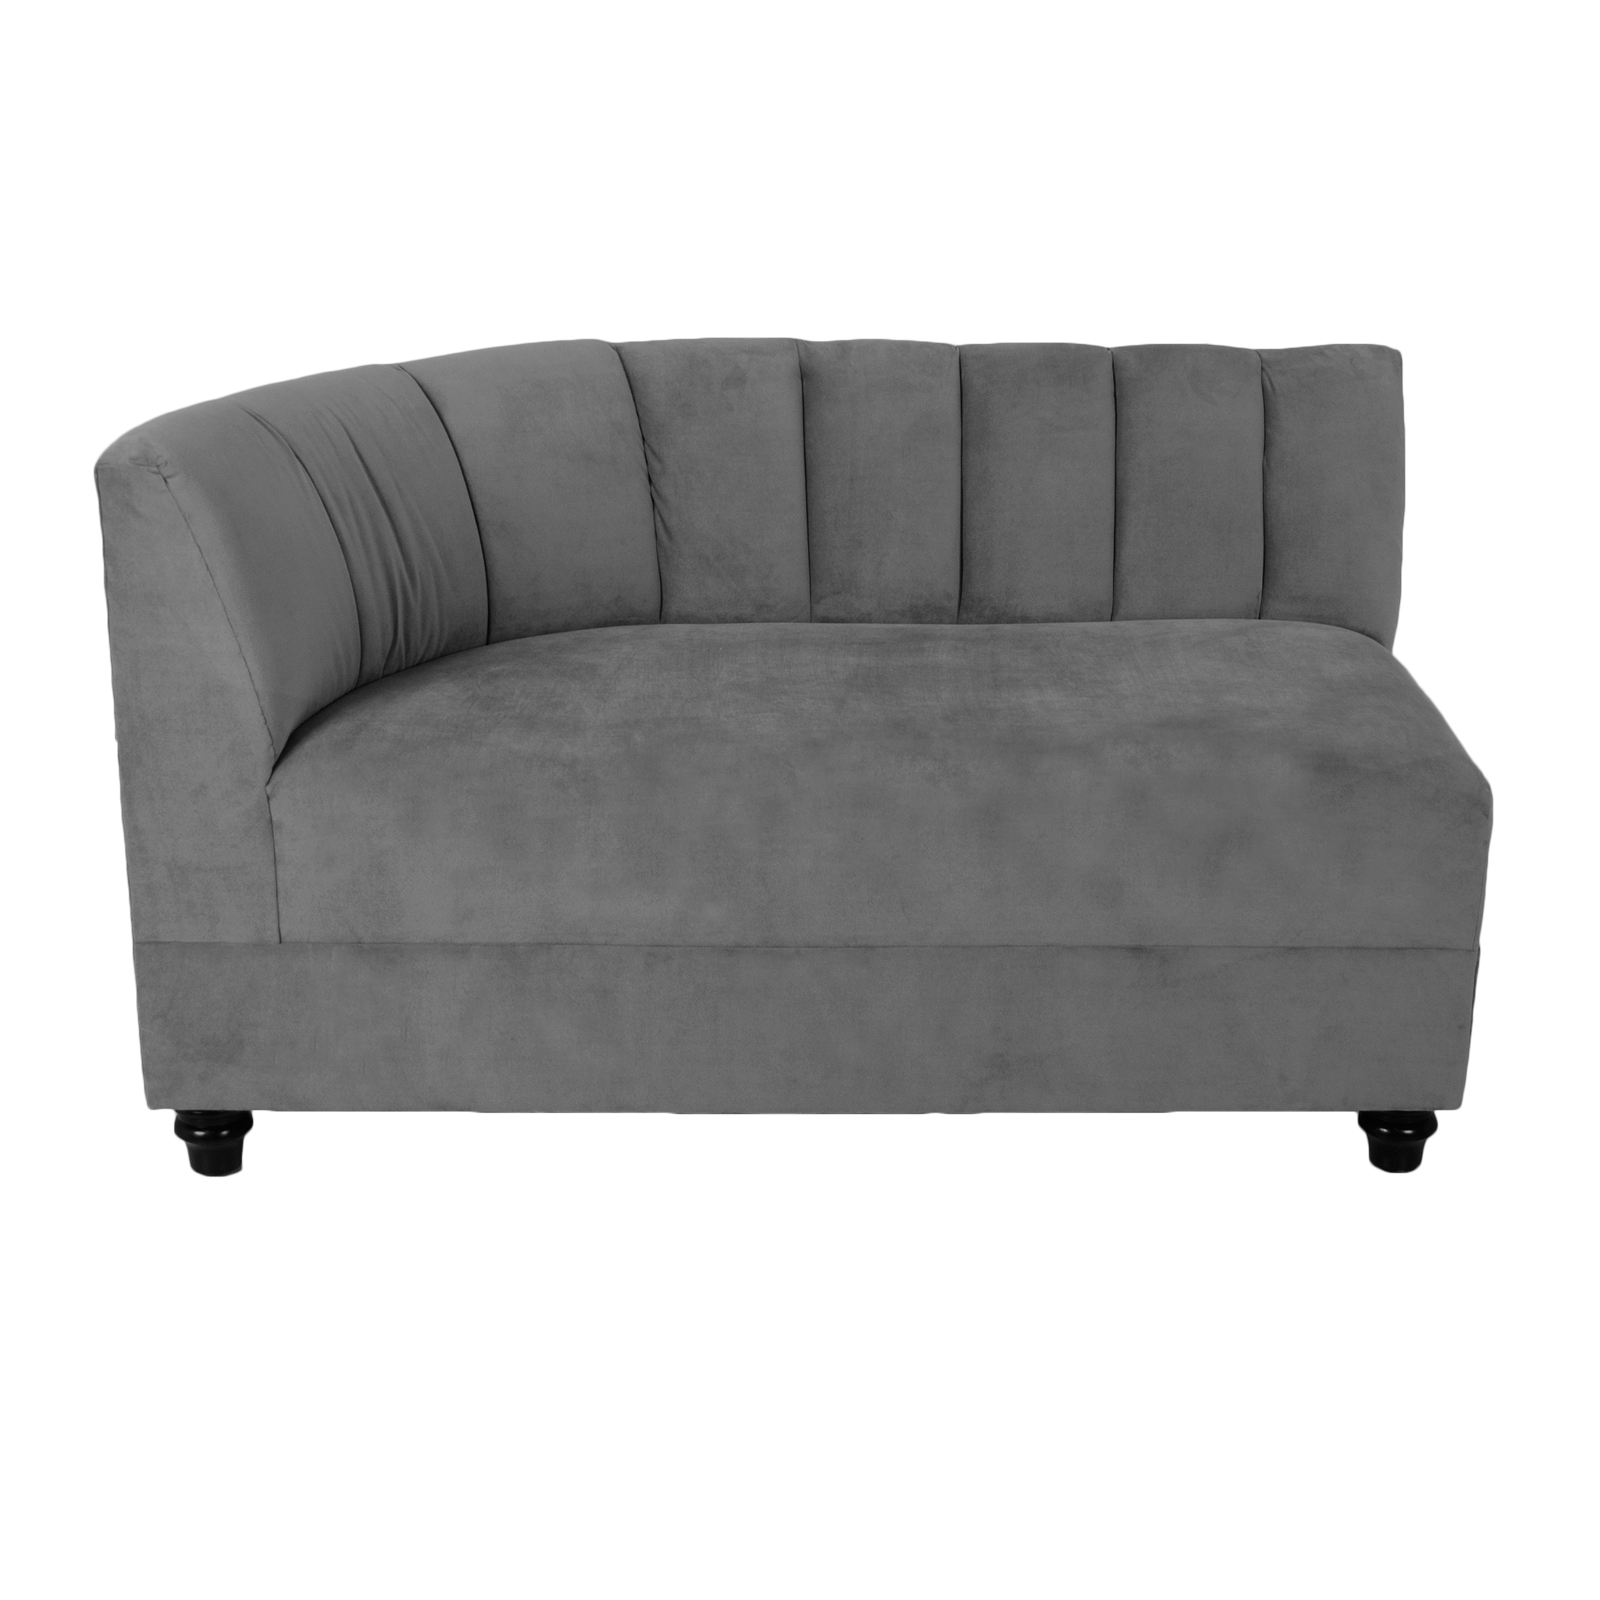 Sofa 60 Inches Wide